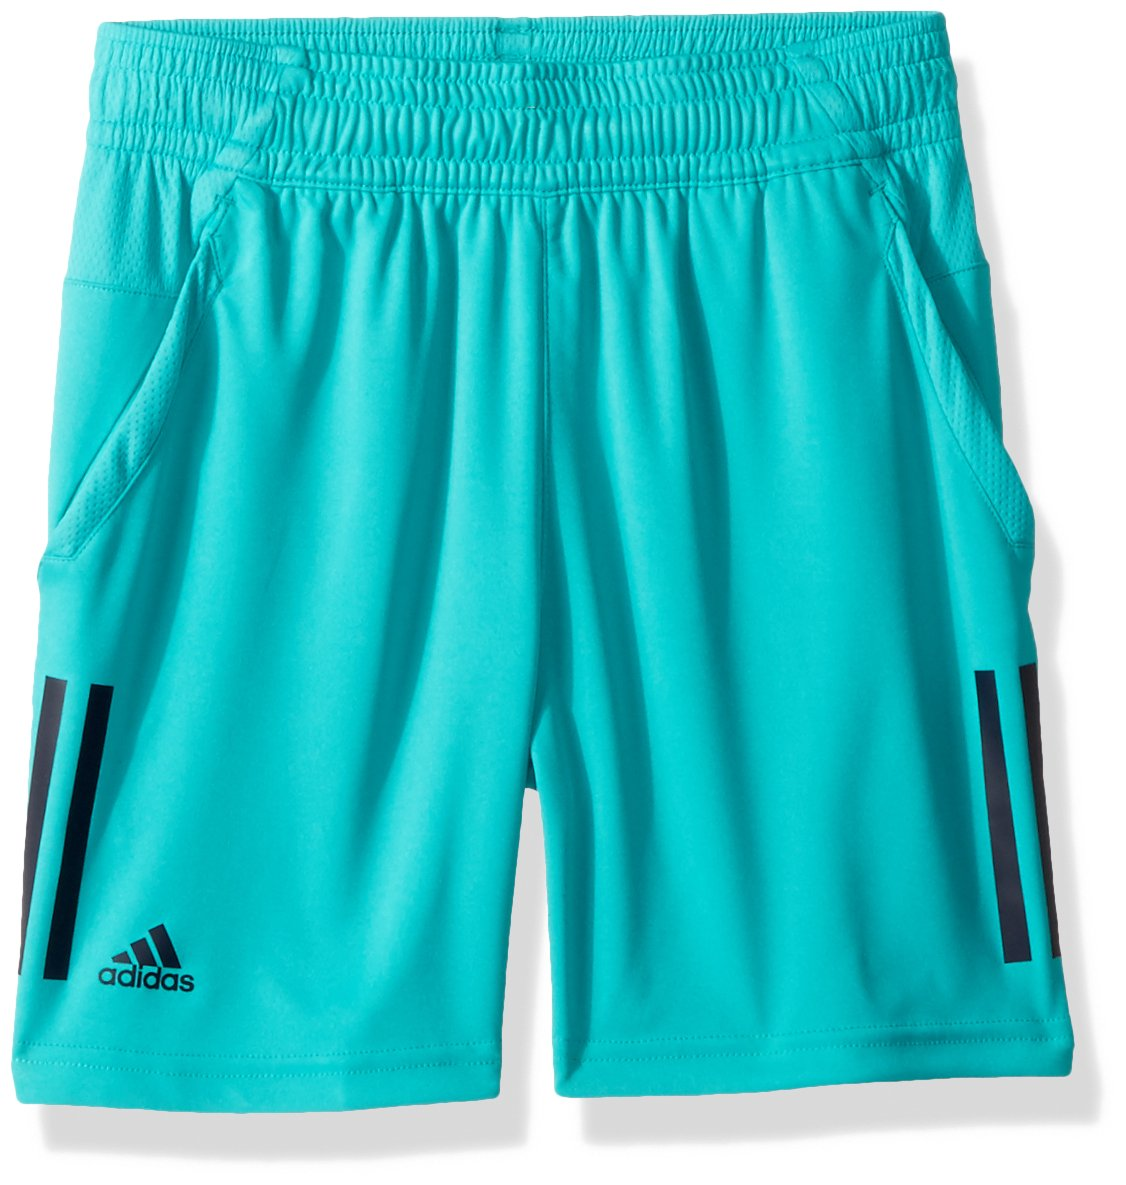 adidas Youth Tennis 3 Stripes Club Shorts, Hi-Res Aqua, X-Small